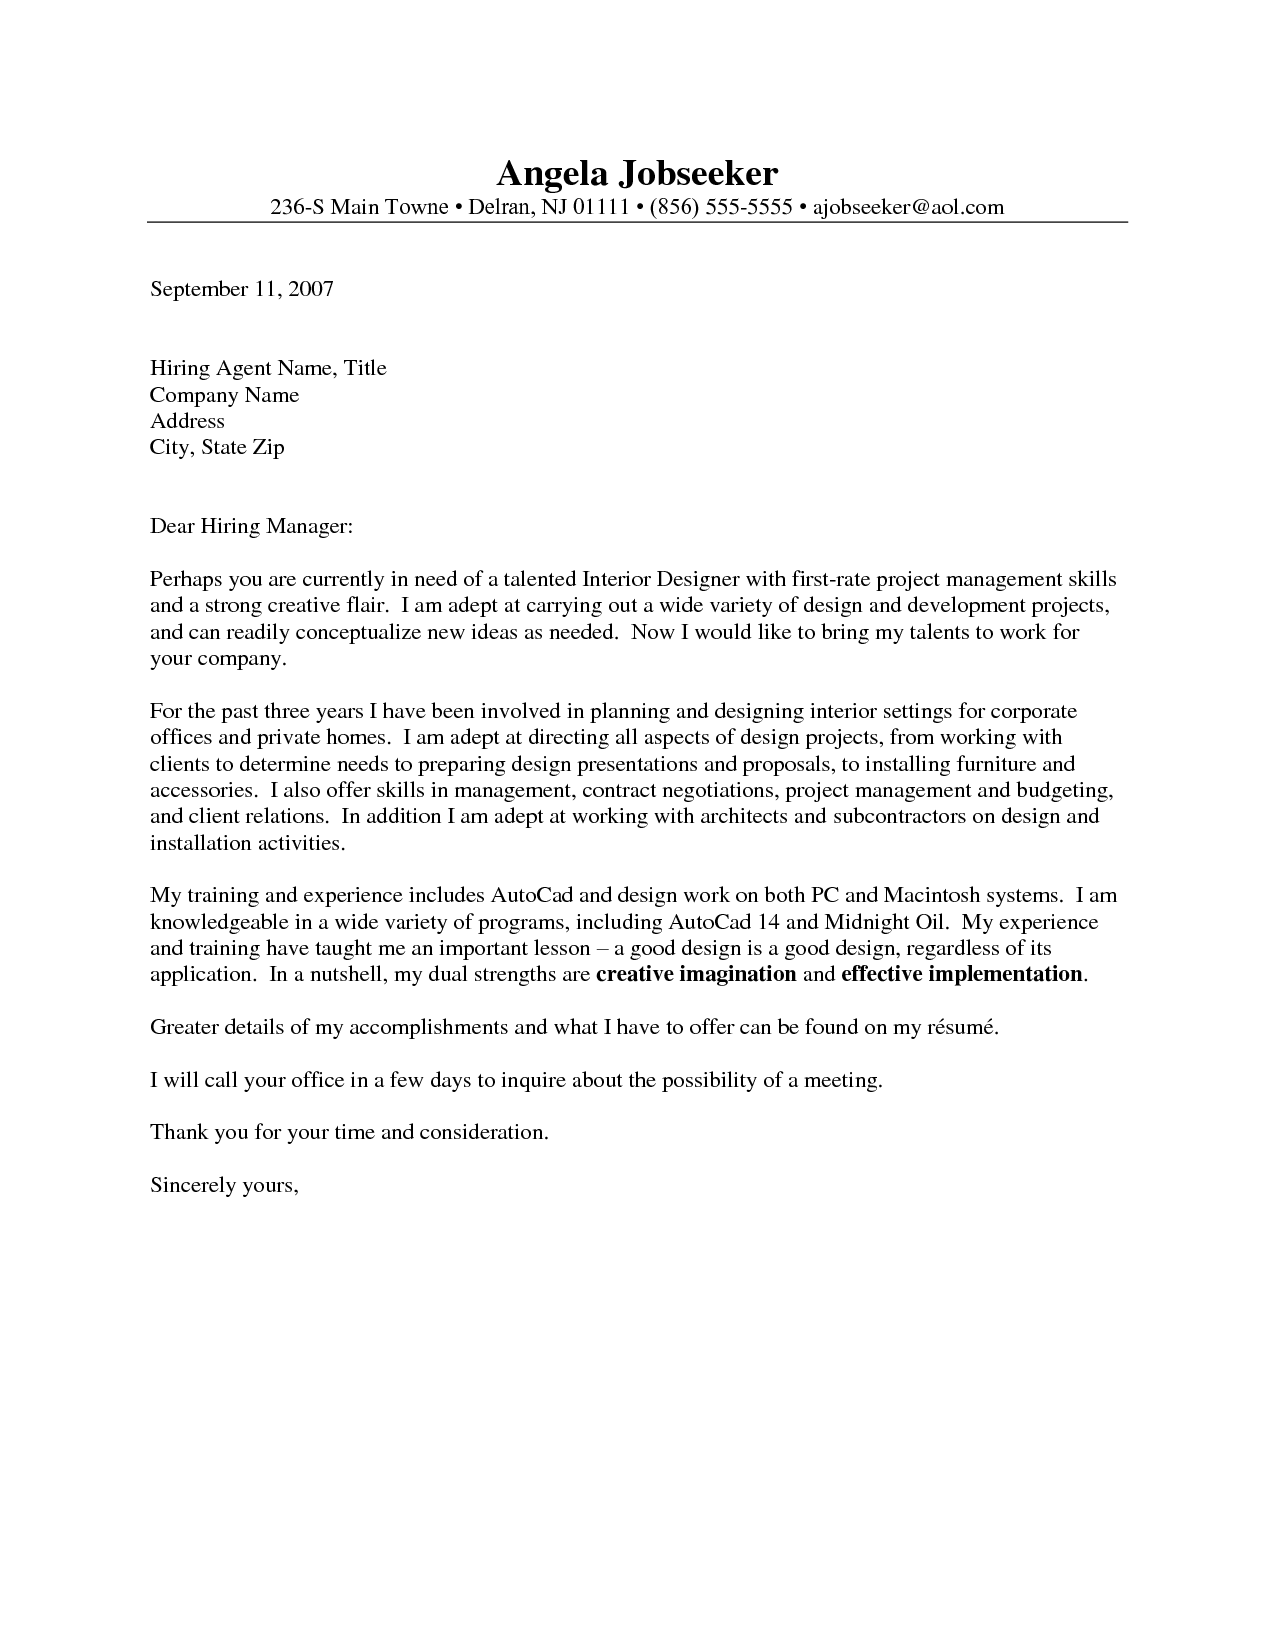 Outstanding cover letter examples interior design cover for Layout of cover letter for job application